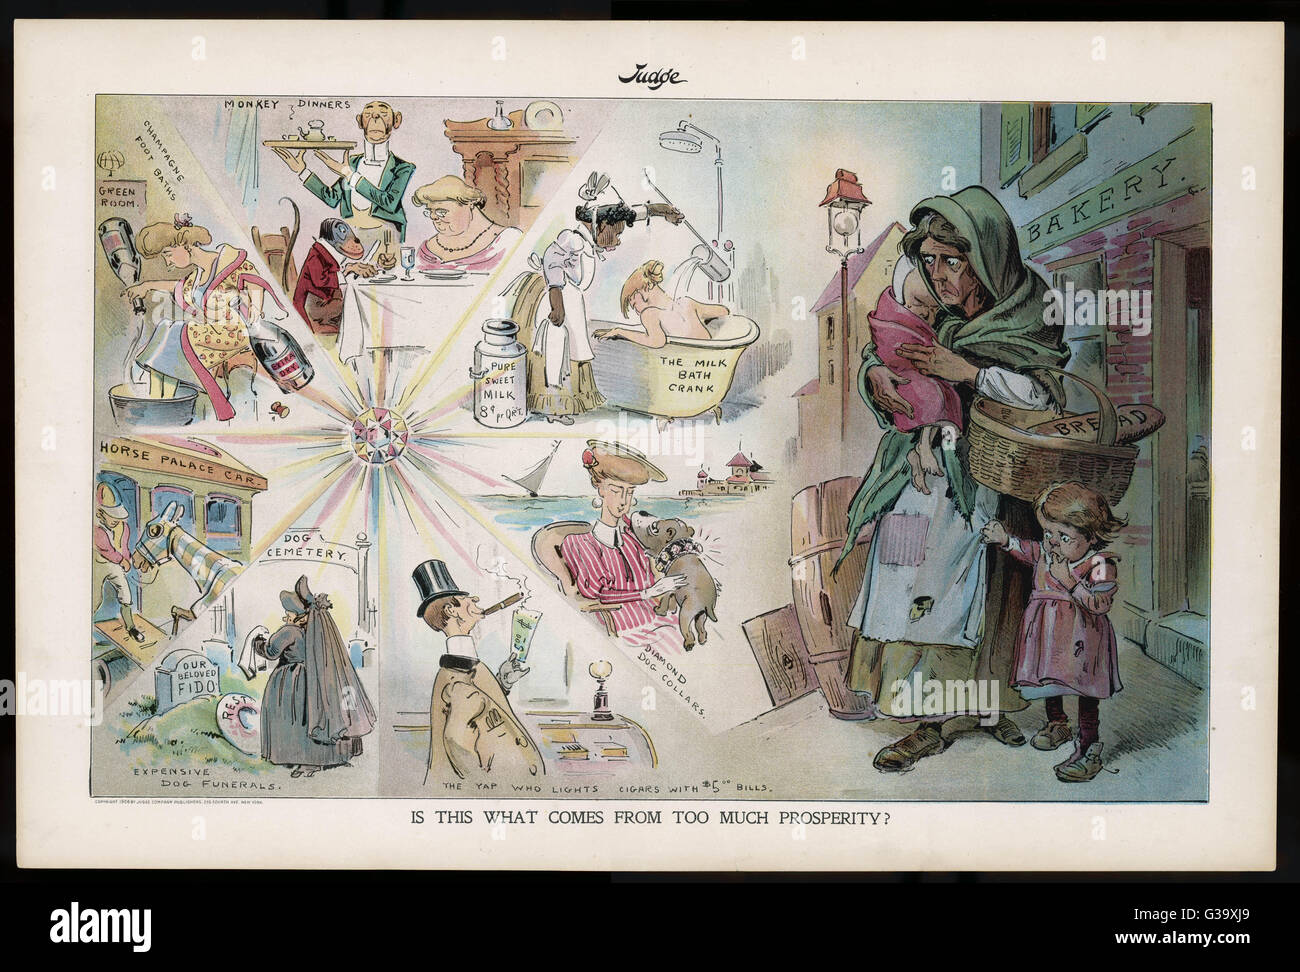 The result of too much  prosperity - conspicuous  consumption by the rich,  while the poor starve       Date: 1906 - Stock Image